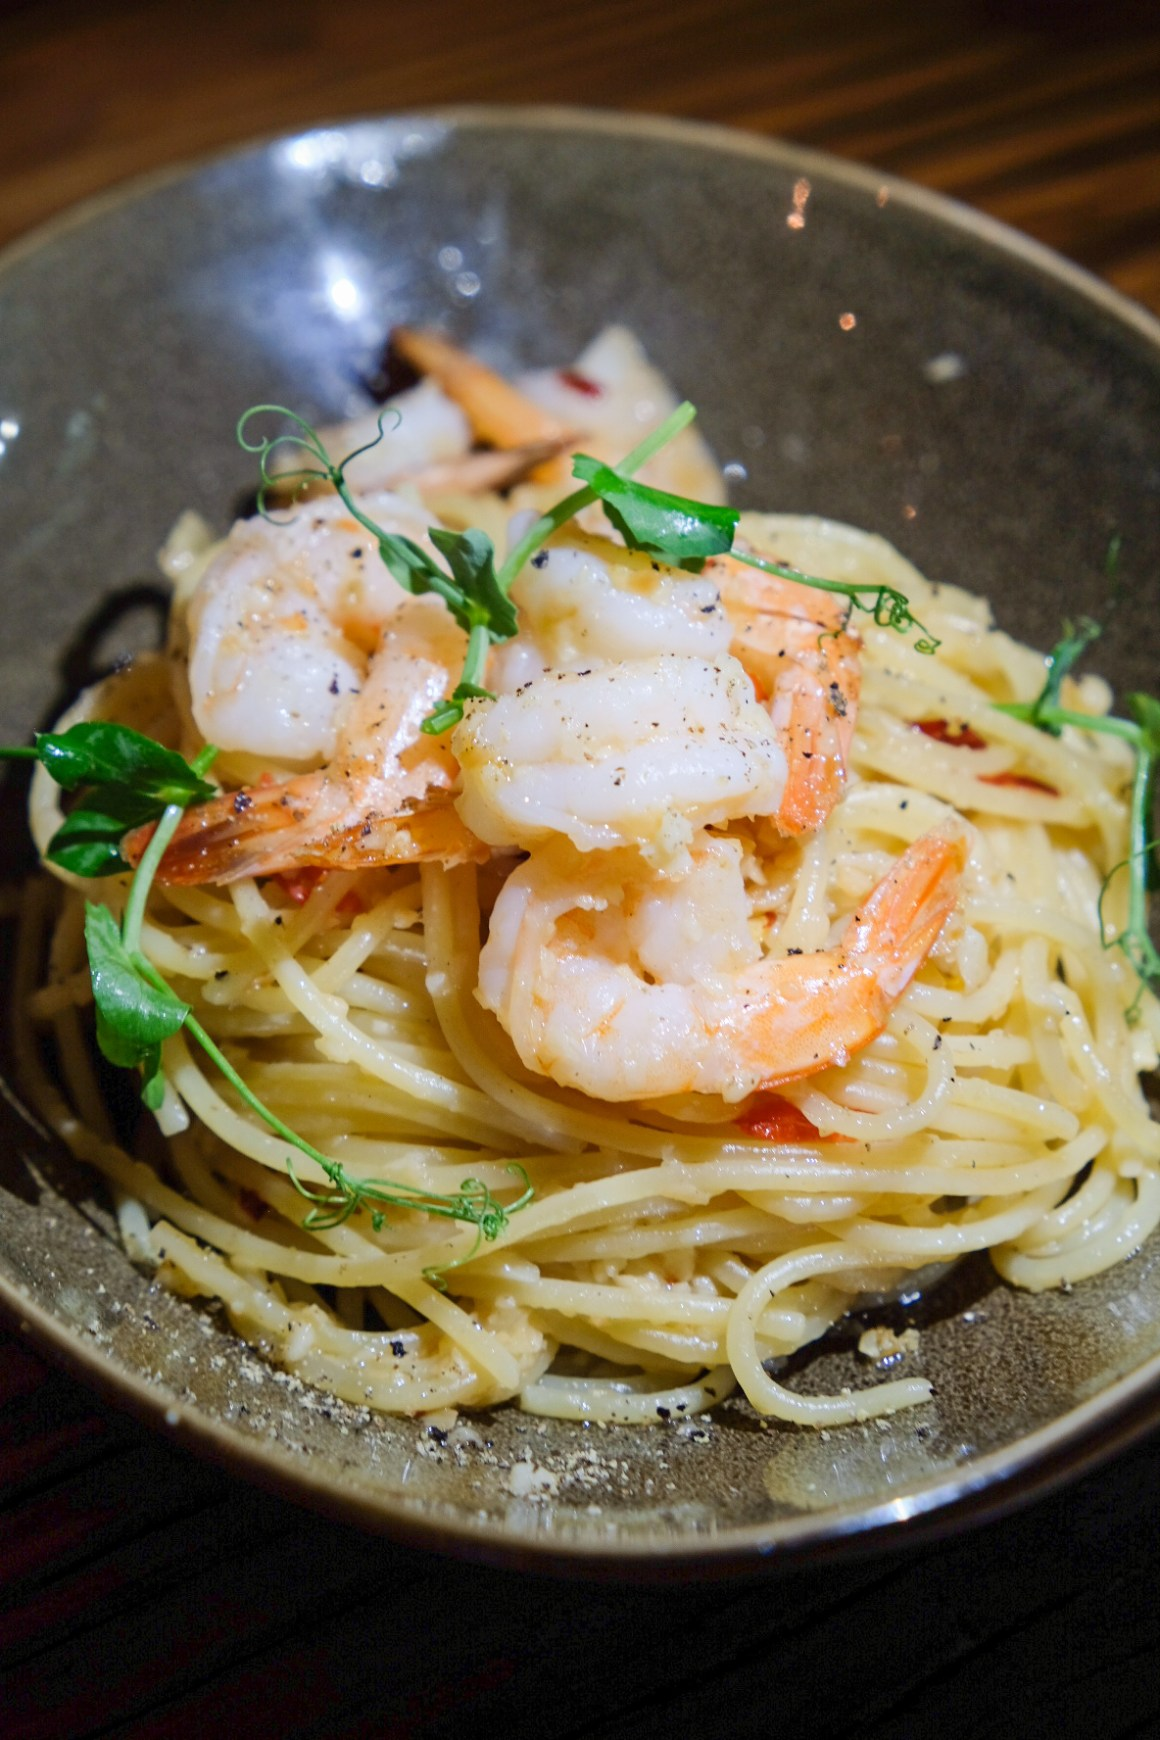 Farmers And Chefs Serving Hearty Wholesome Food - Prawn Aglio Olio ($13)